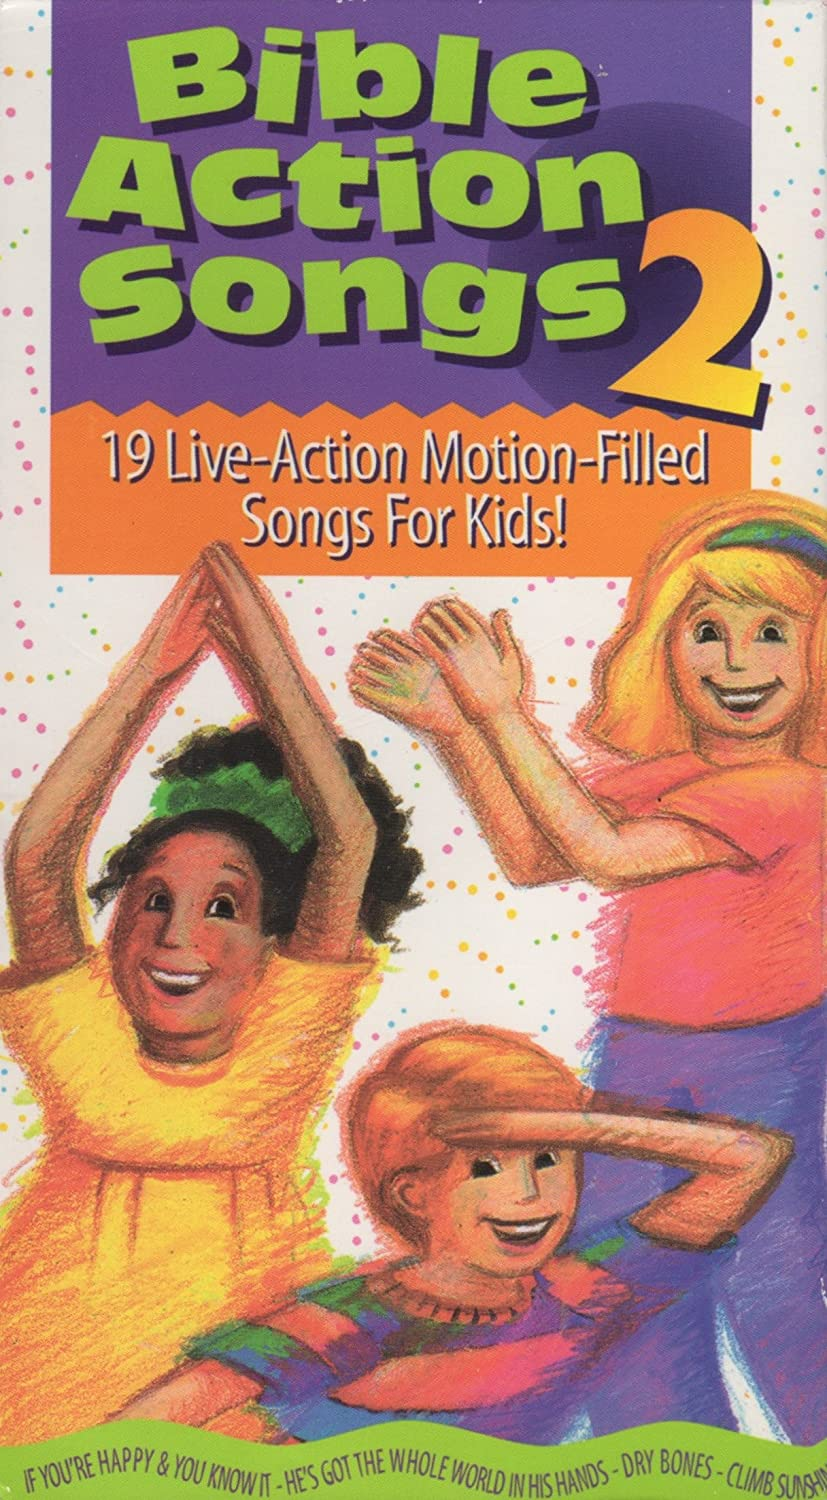 Bible Action Songs 2 (1997 VHS)